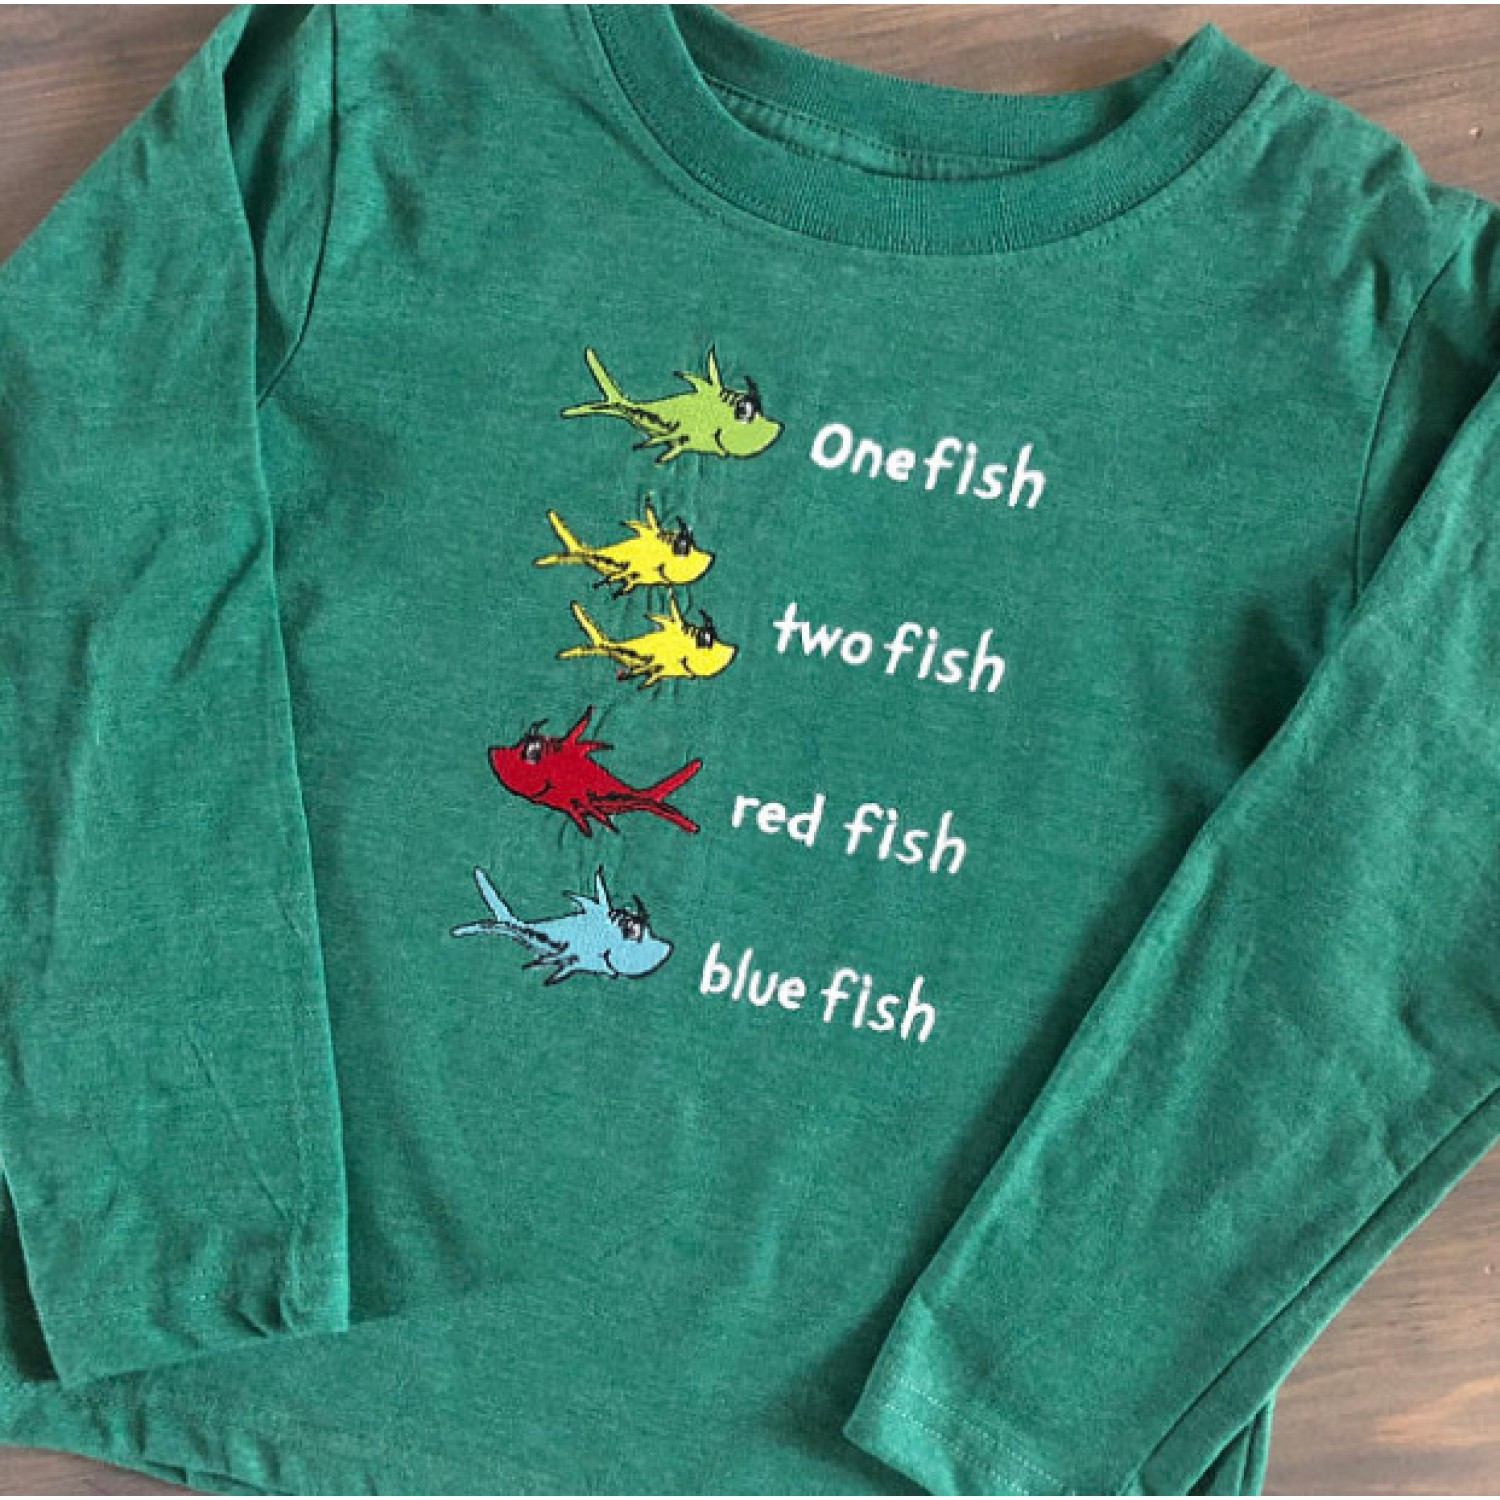 One fish two fish design